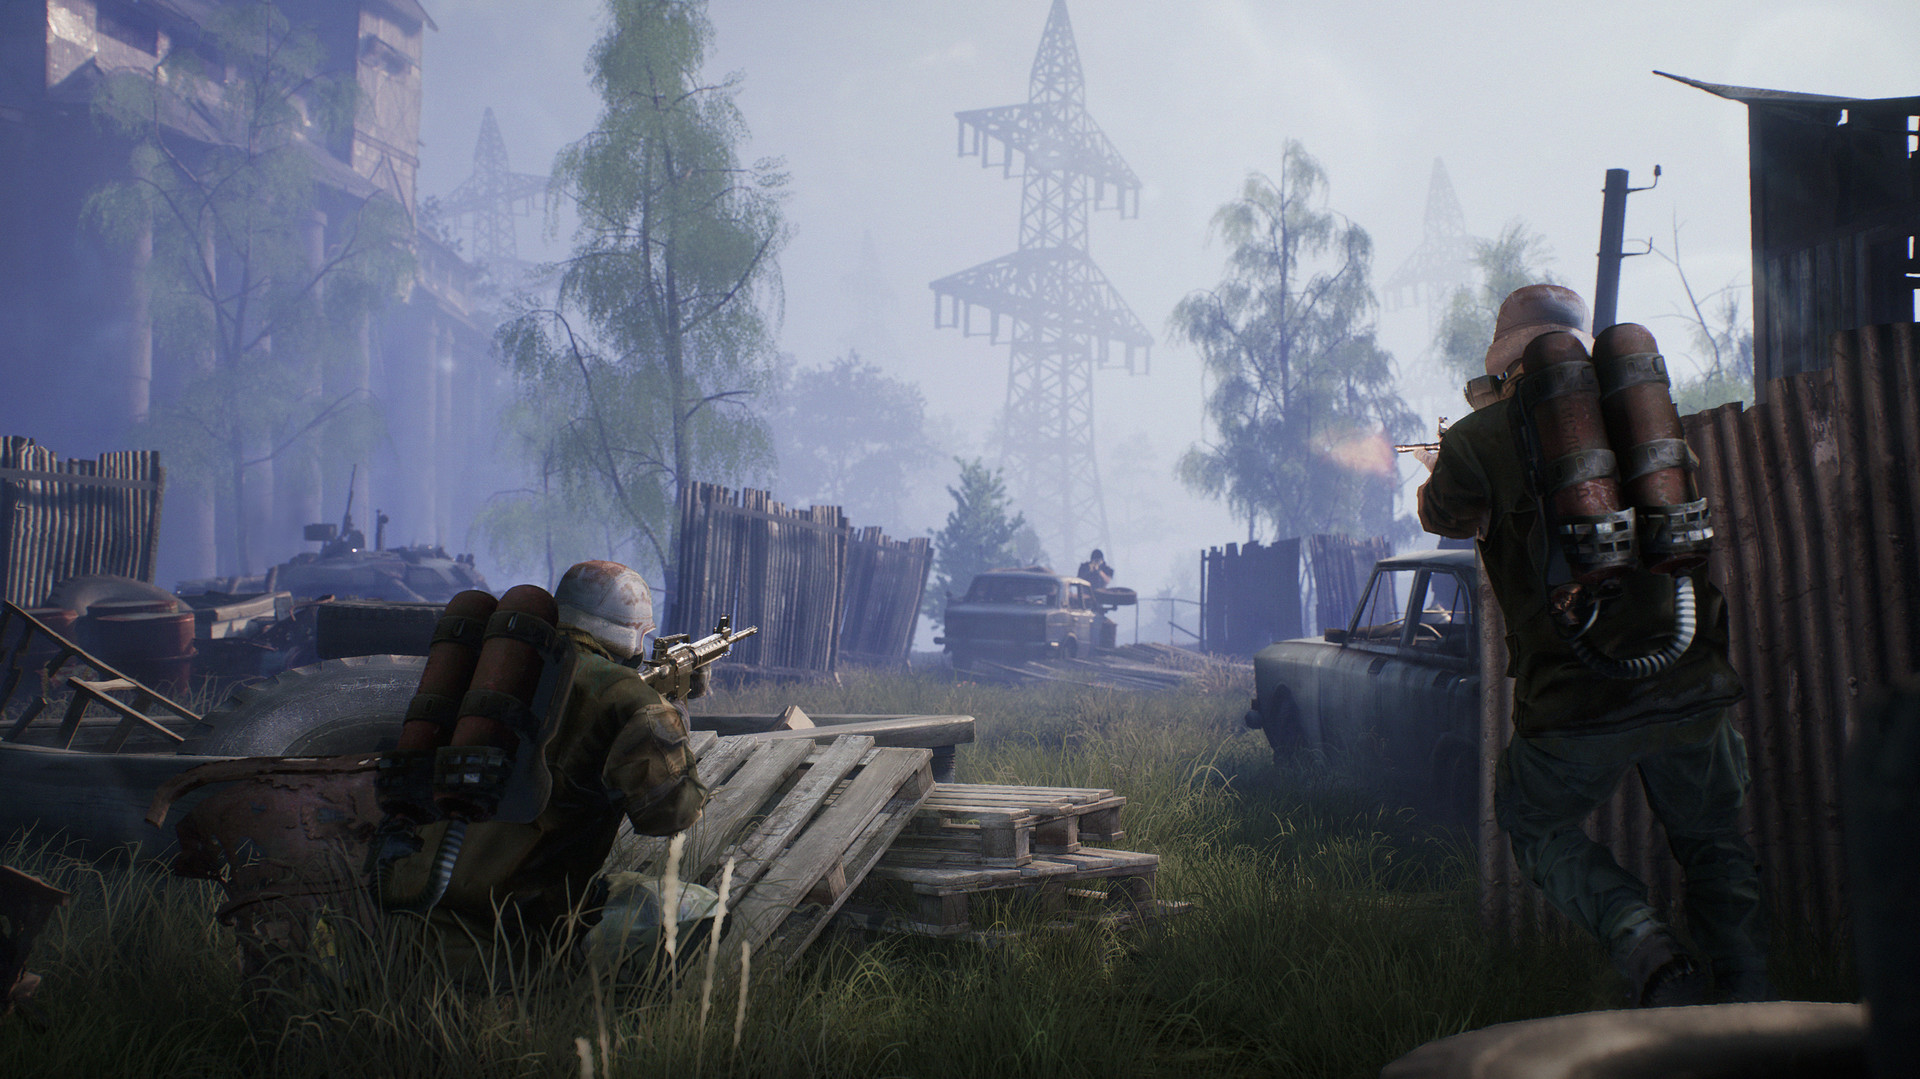 Stalker-inspired battle royale Fear the Wolves Early Access release date set (Updated) | PC Gamer